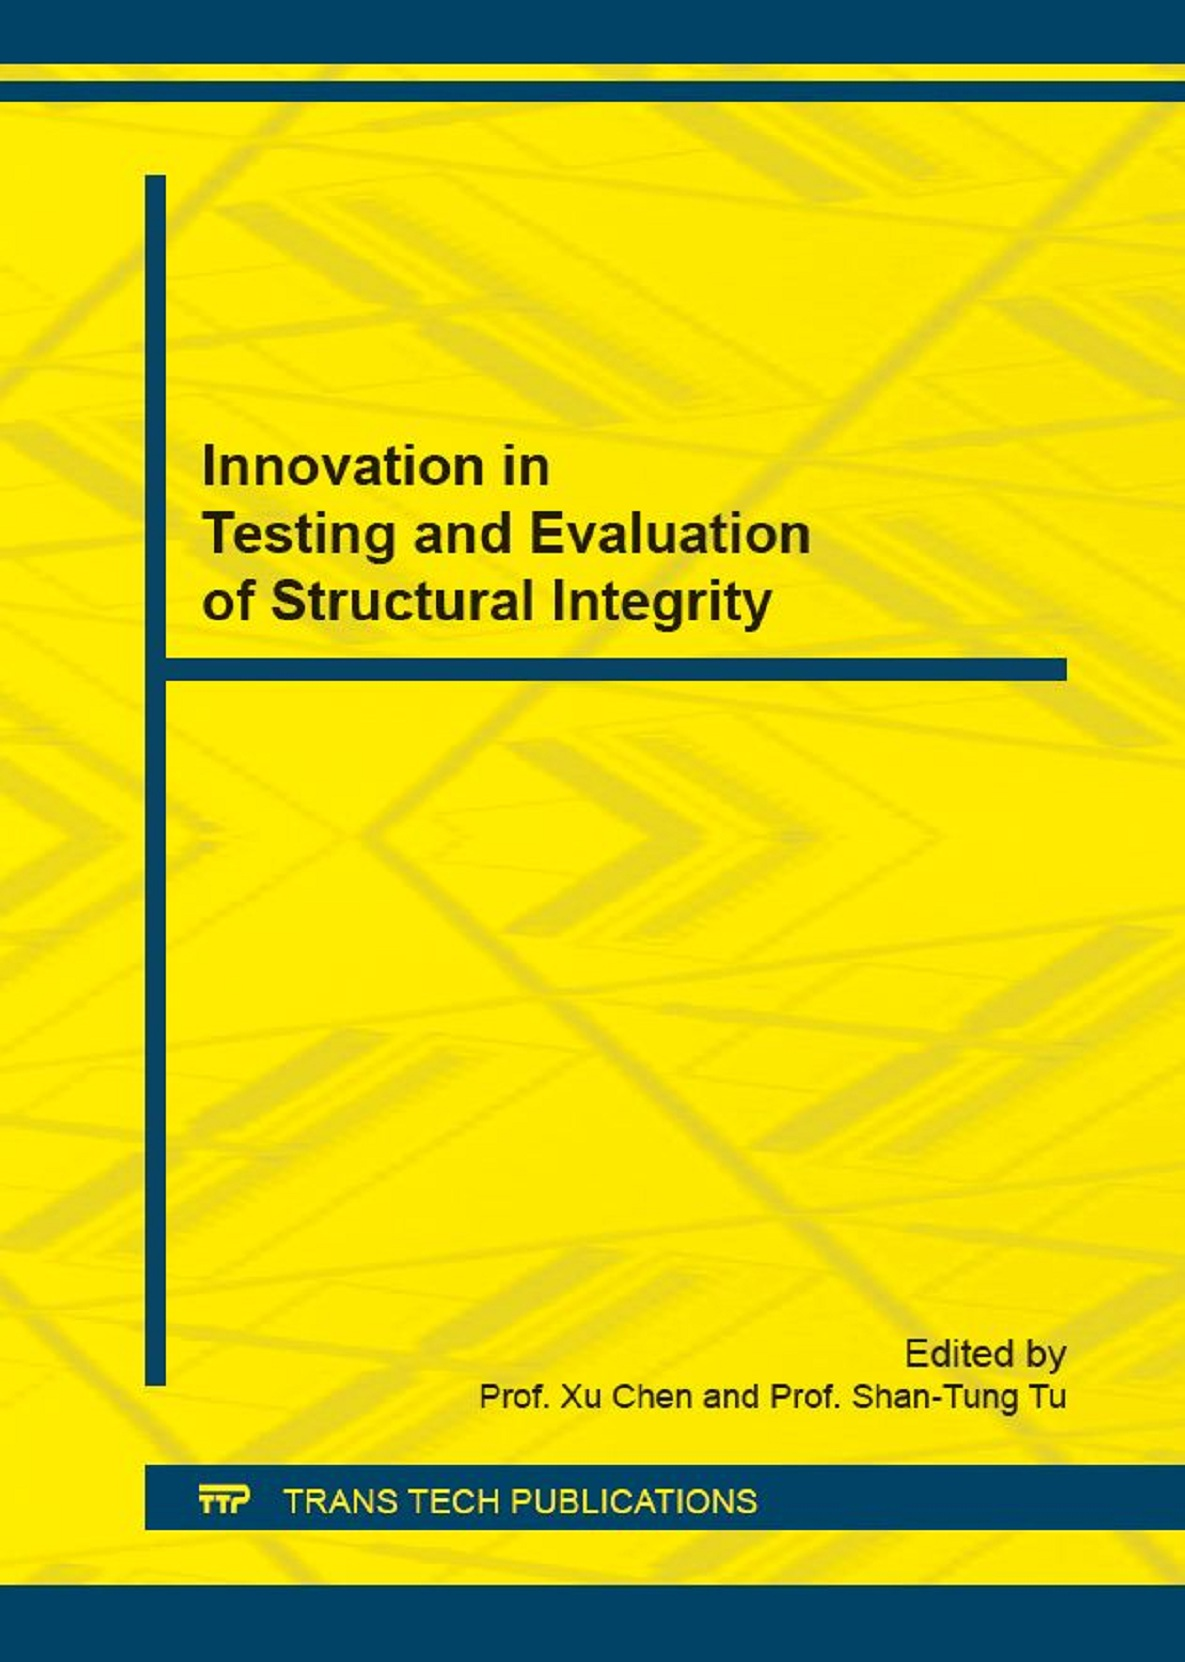 Innovation in Testing and Evaluation of Structural Integrity